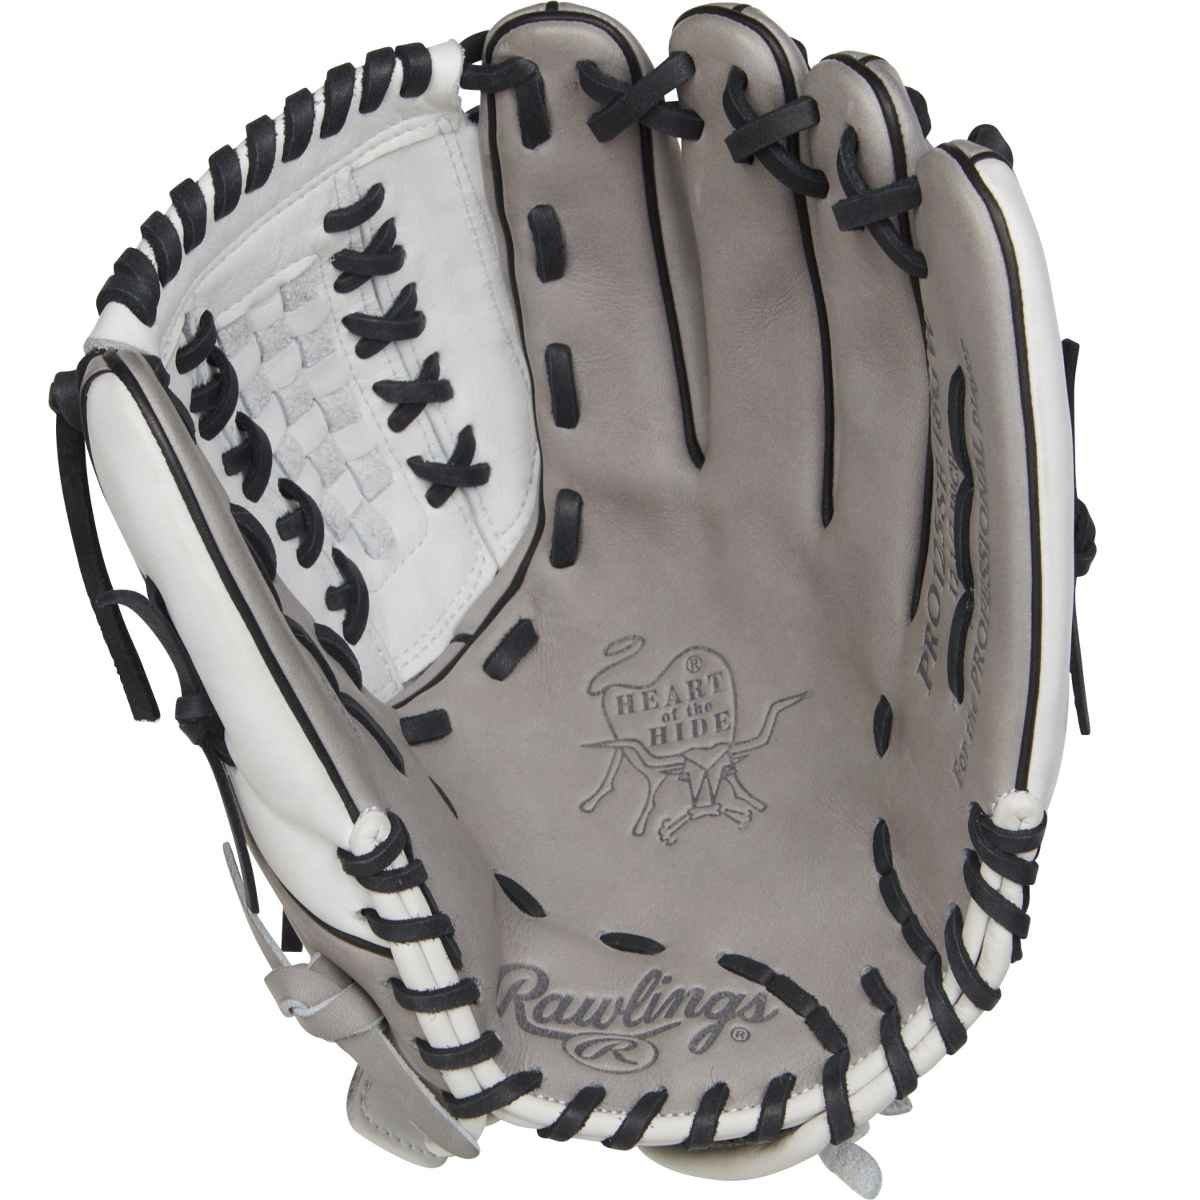 Rawlings Heart of the Hide 12.5